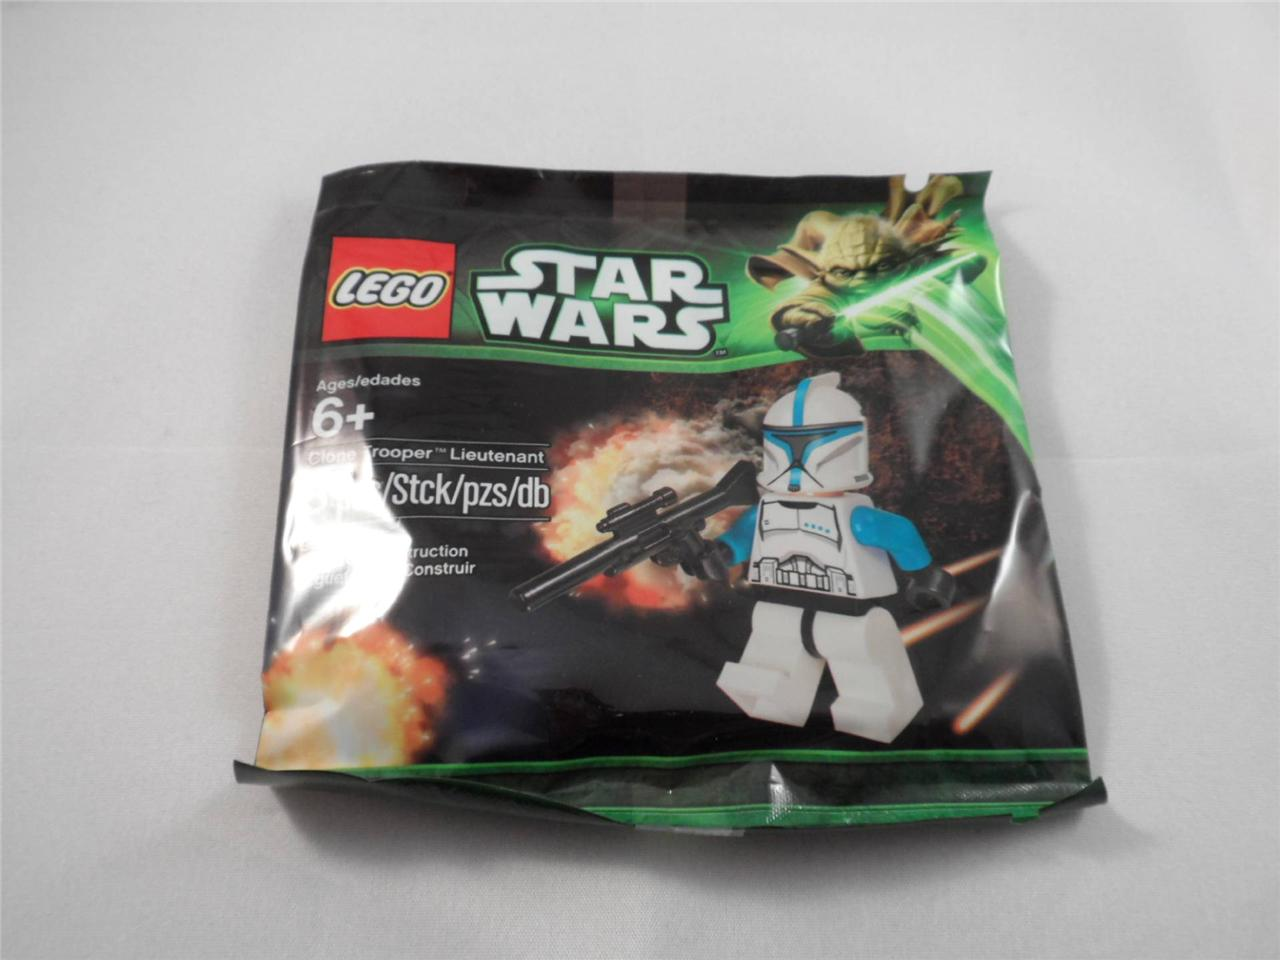 Lego-Clone-Trooper-Lieutenant-Star-Wars-Polybag-set-5001709-Limited-Edition